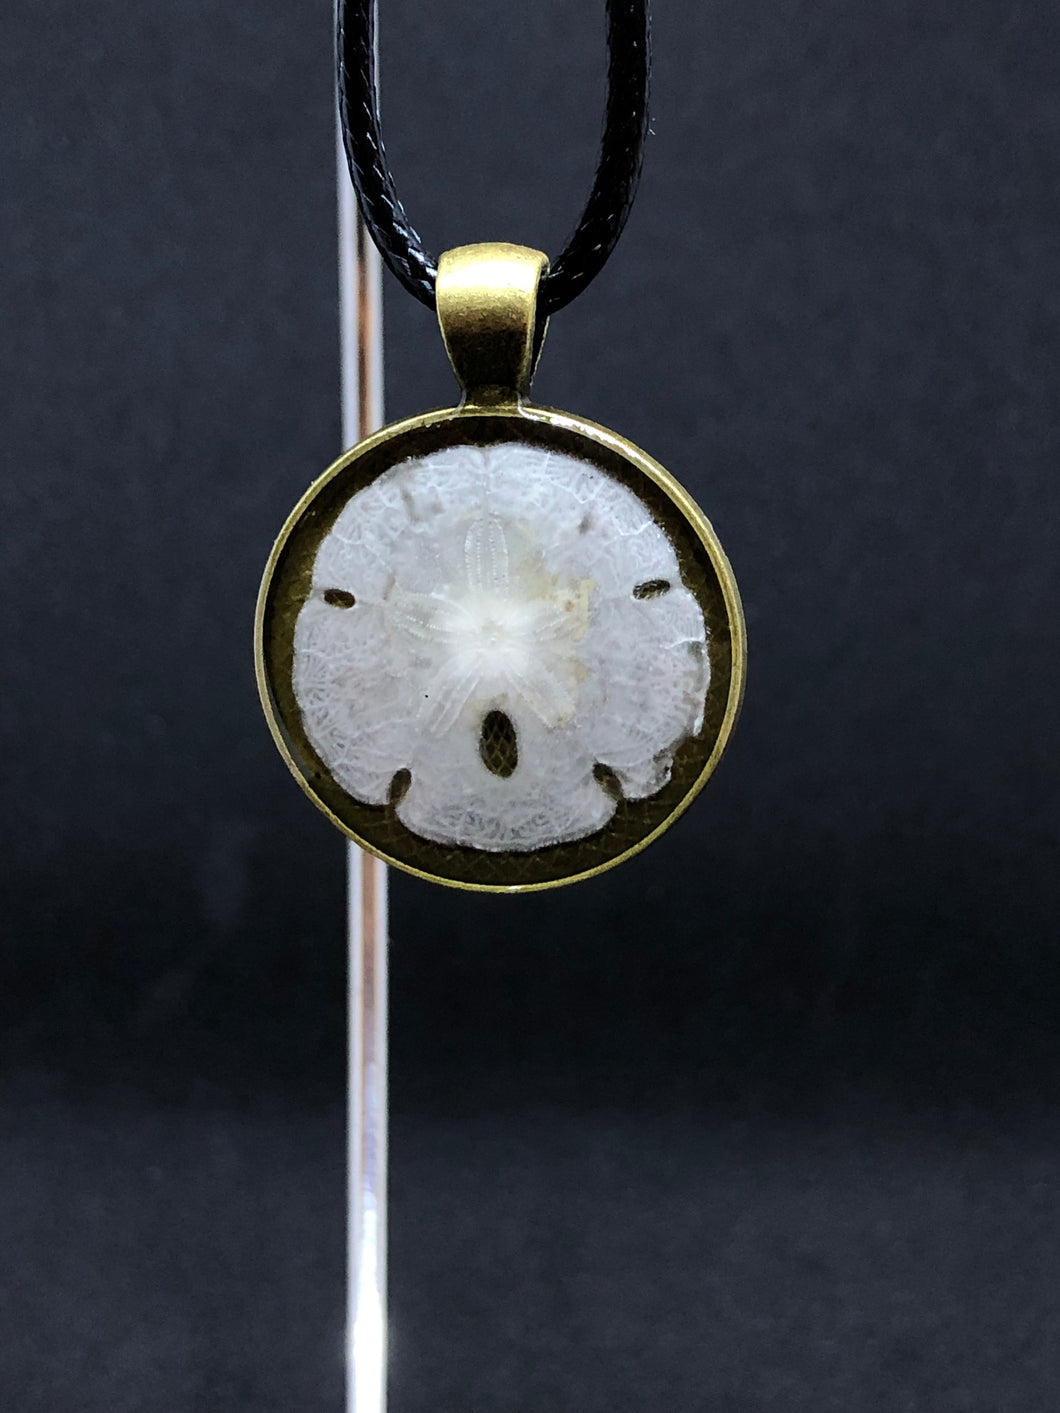 Sand Dollar / Antique Gold Pendant - Black Cord Necklace